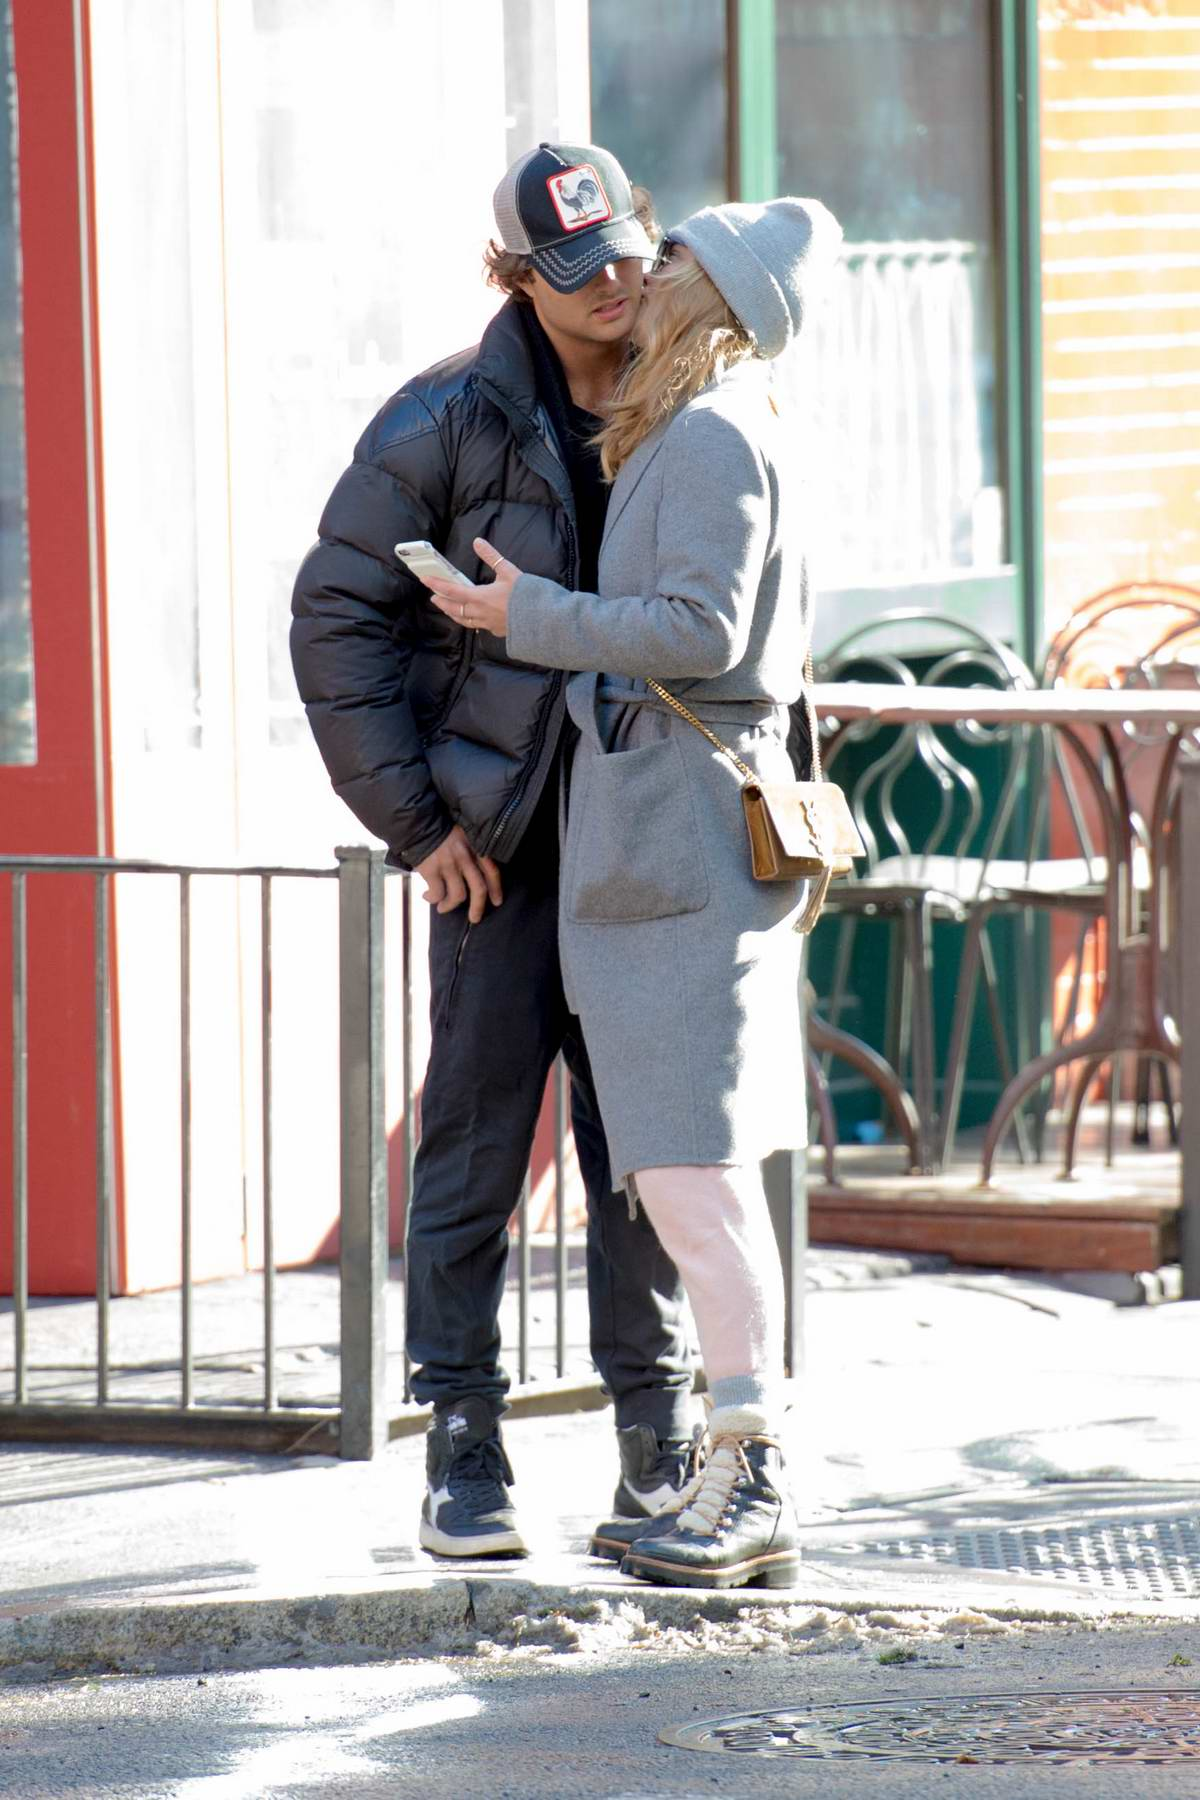 Nina Agdal kisses and walks hand in hand with boyfriend Jack Brinkley-Cook while out for shopping New York City